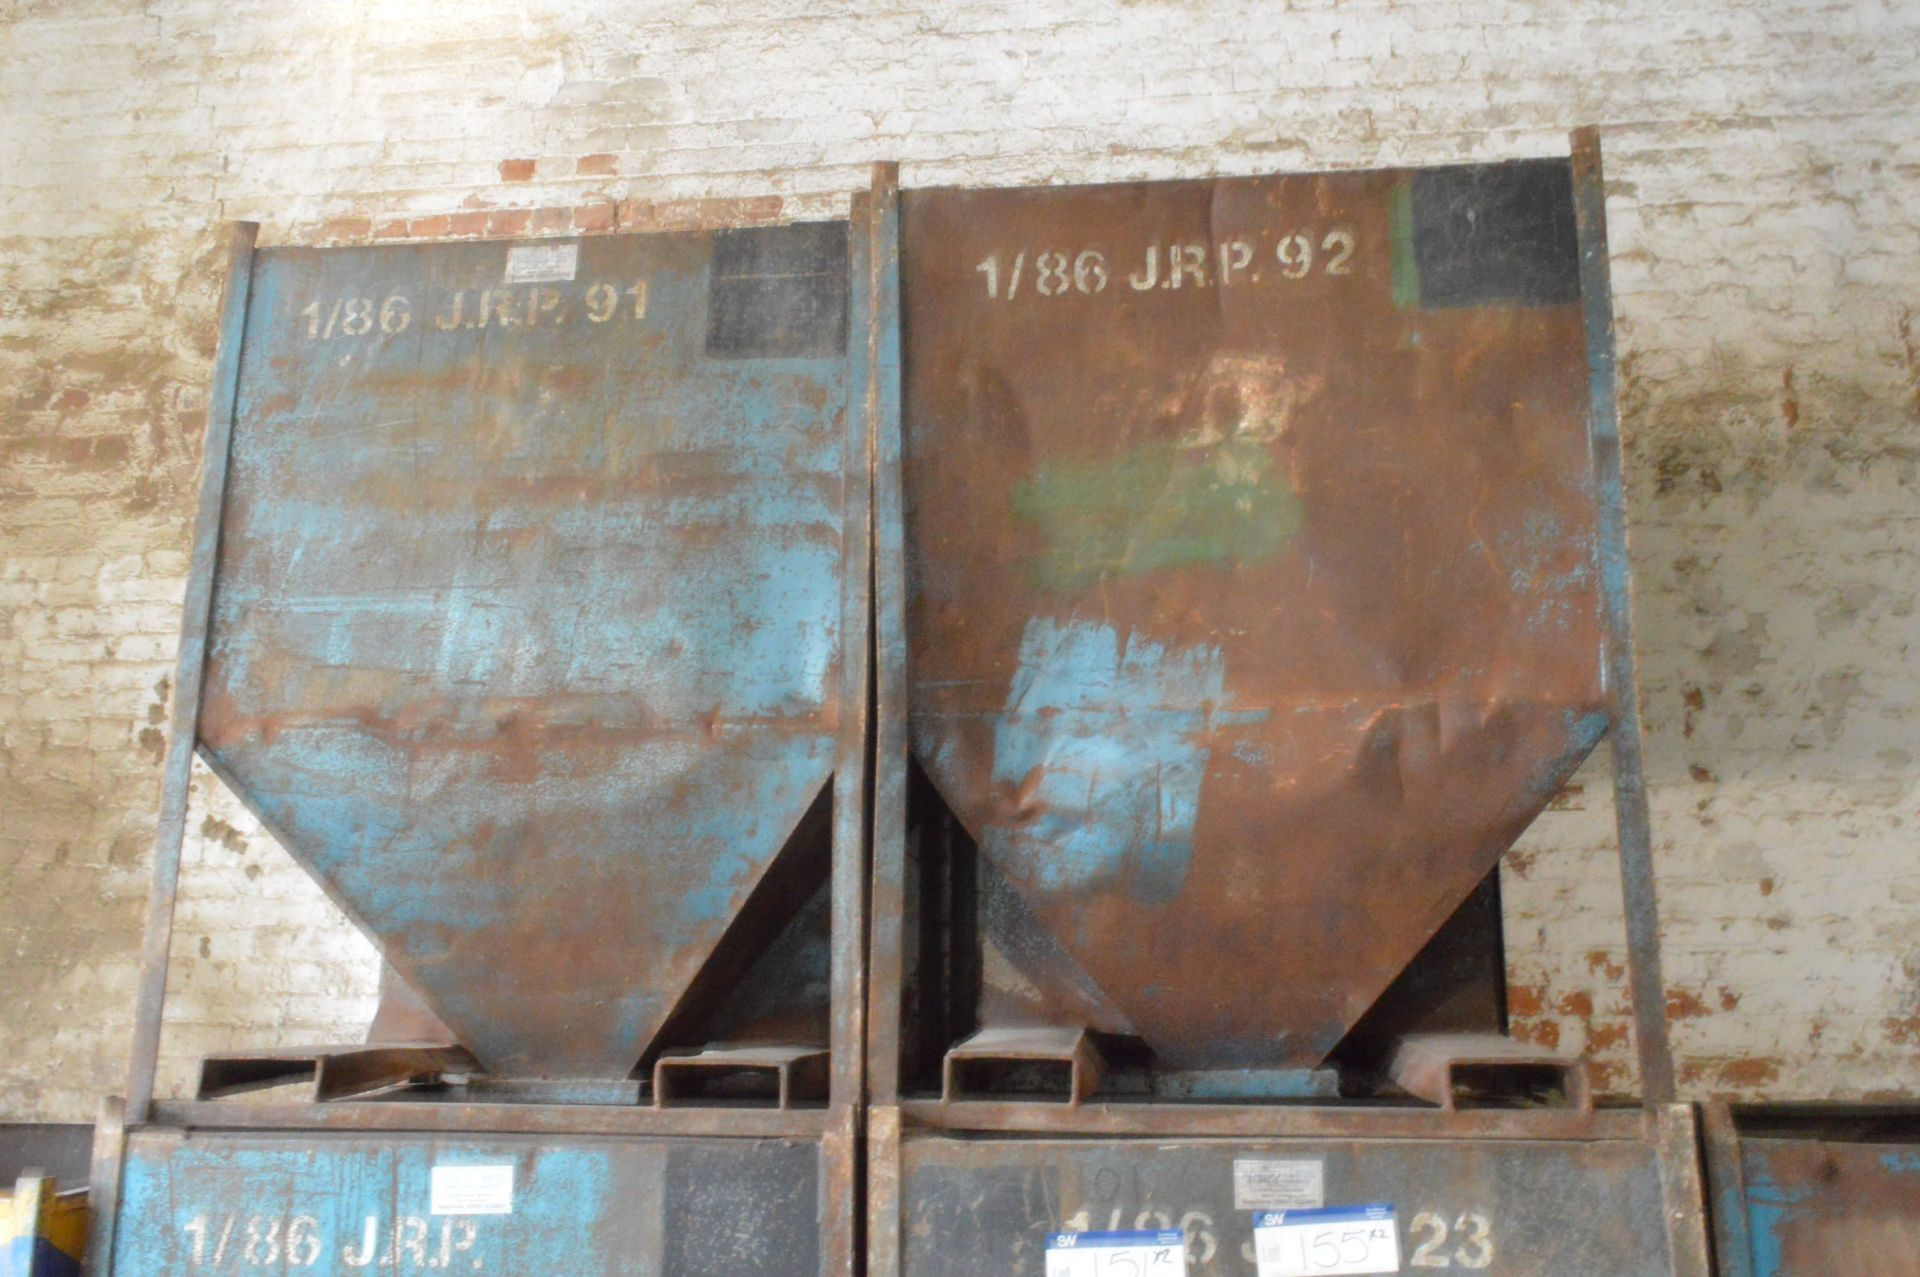 Lot 153 - Two x 1 tonne Hopper Bottom Tote Bins, each approx. 1.25m x 1.1m x 1.6m deep overall, with fork lift